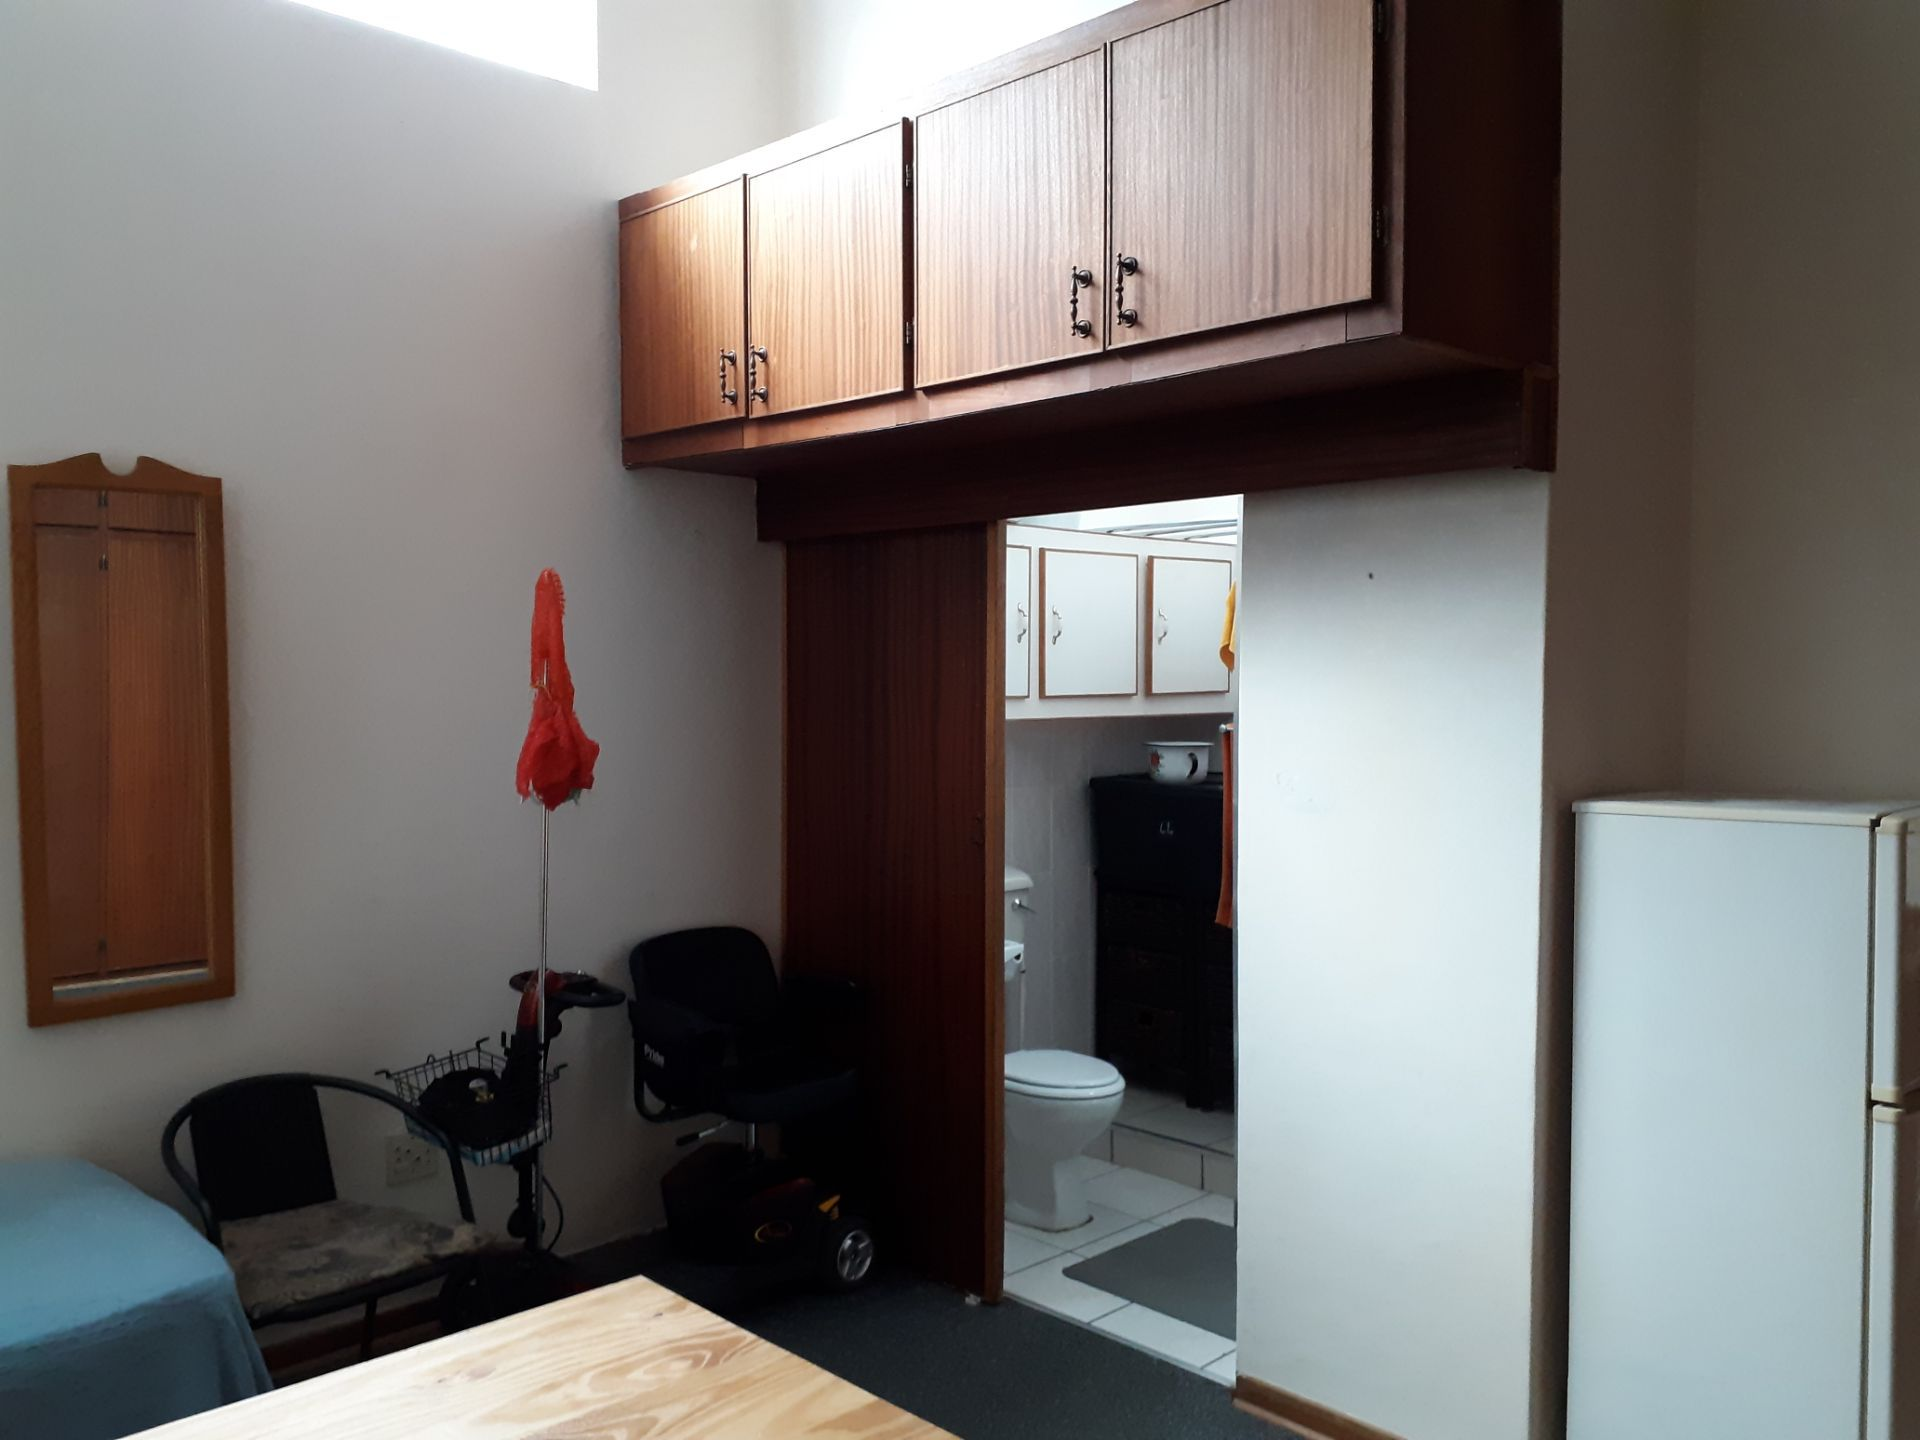 Apartment in Bult - 20190402_162825.jpg